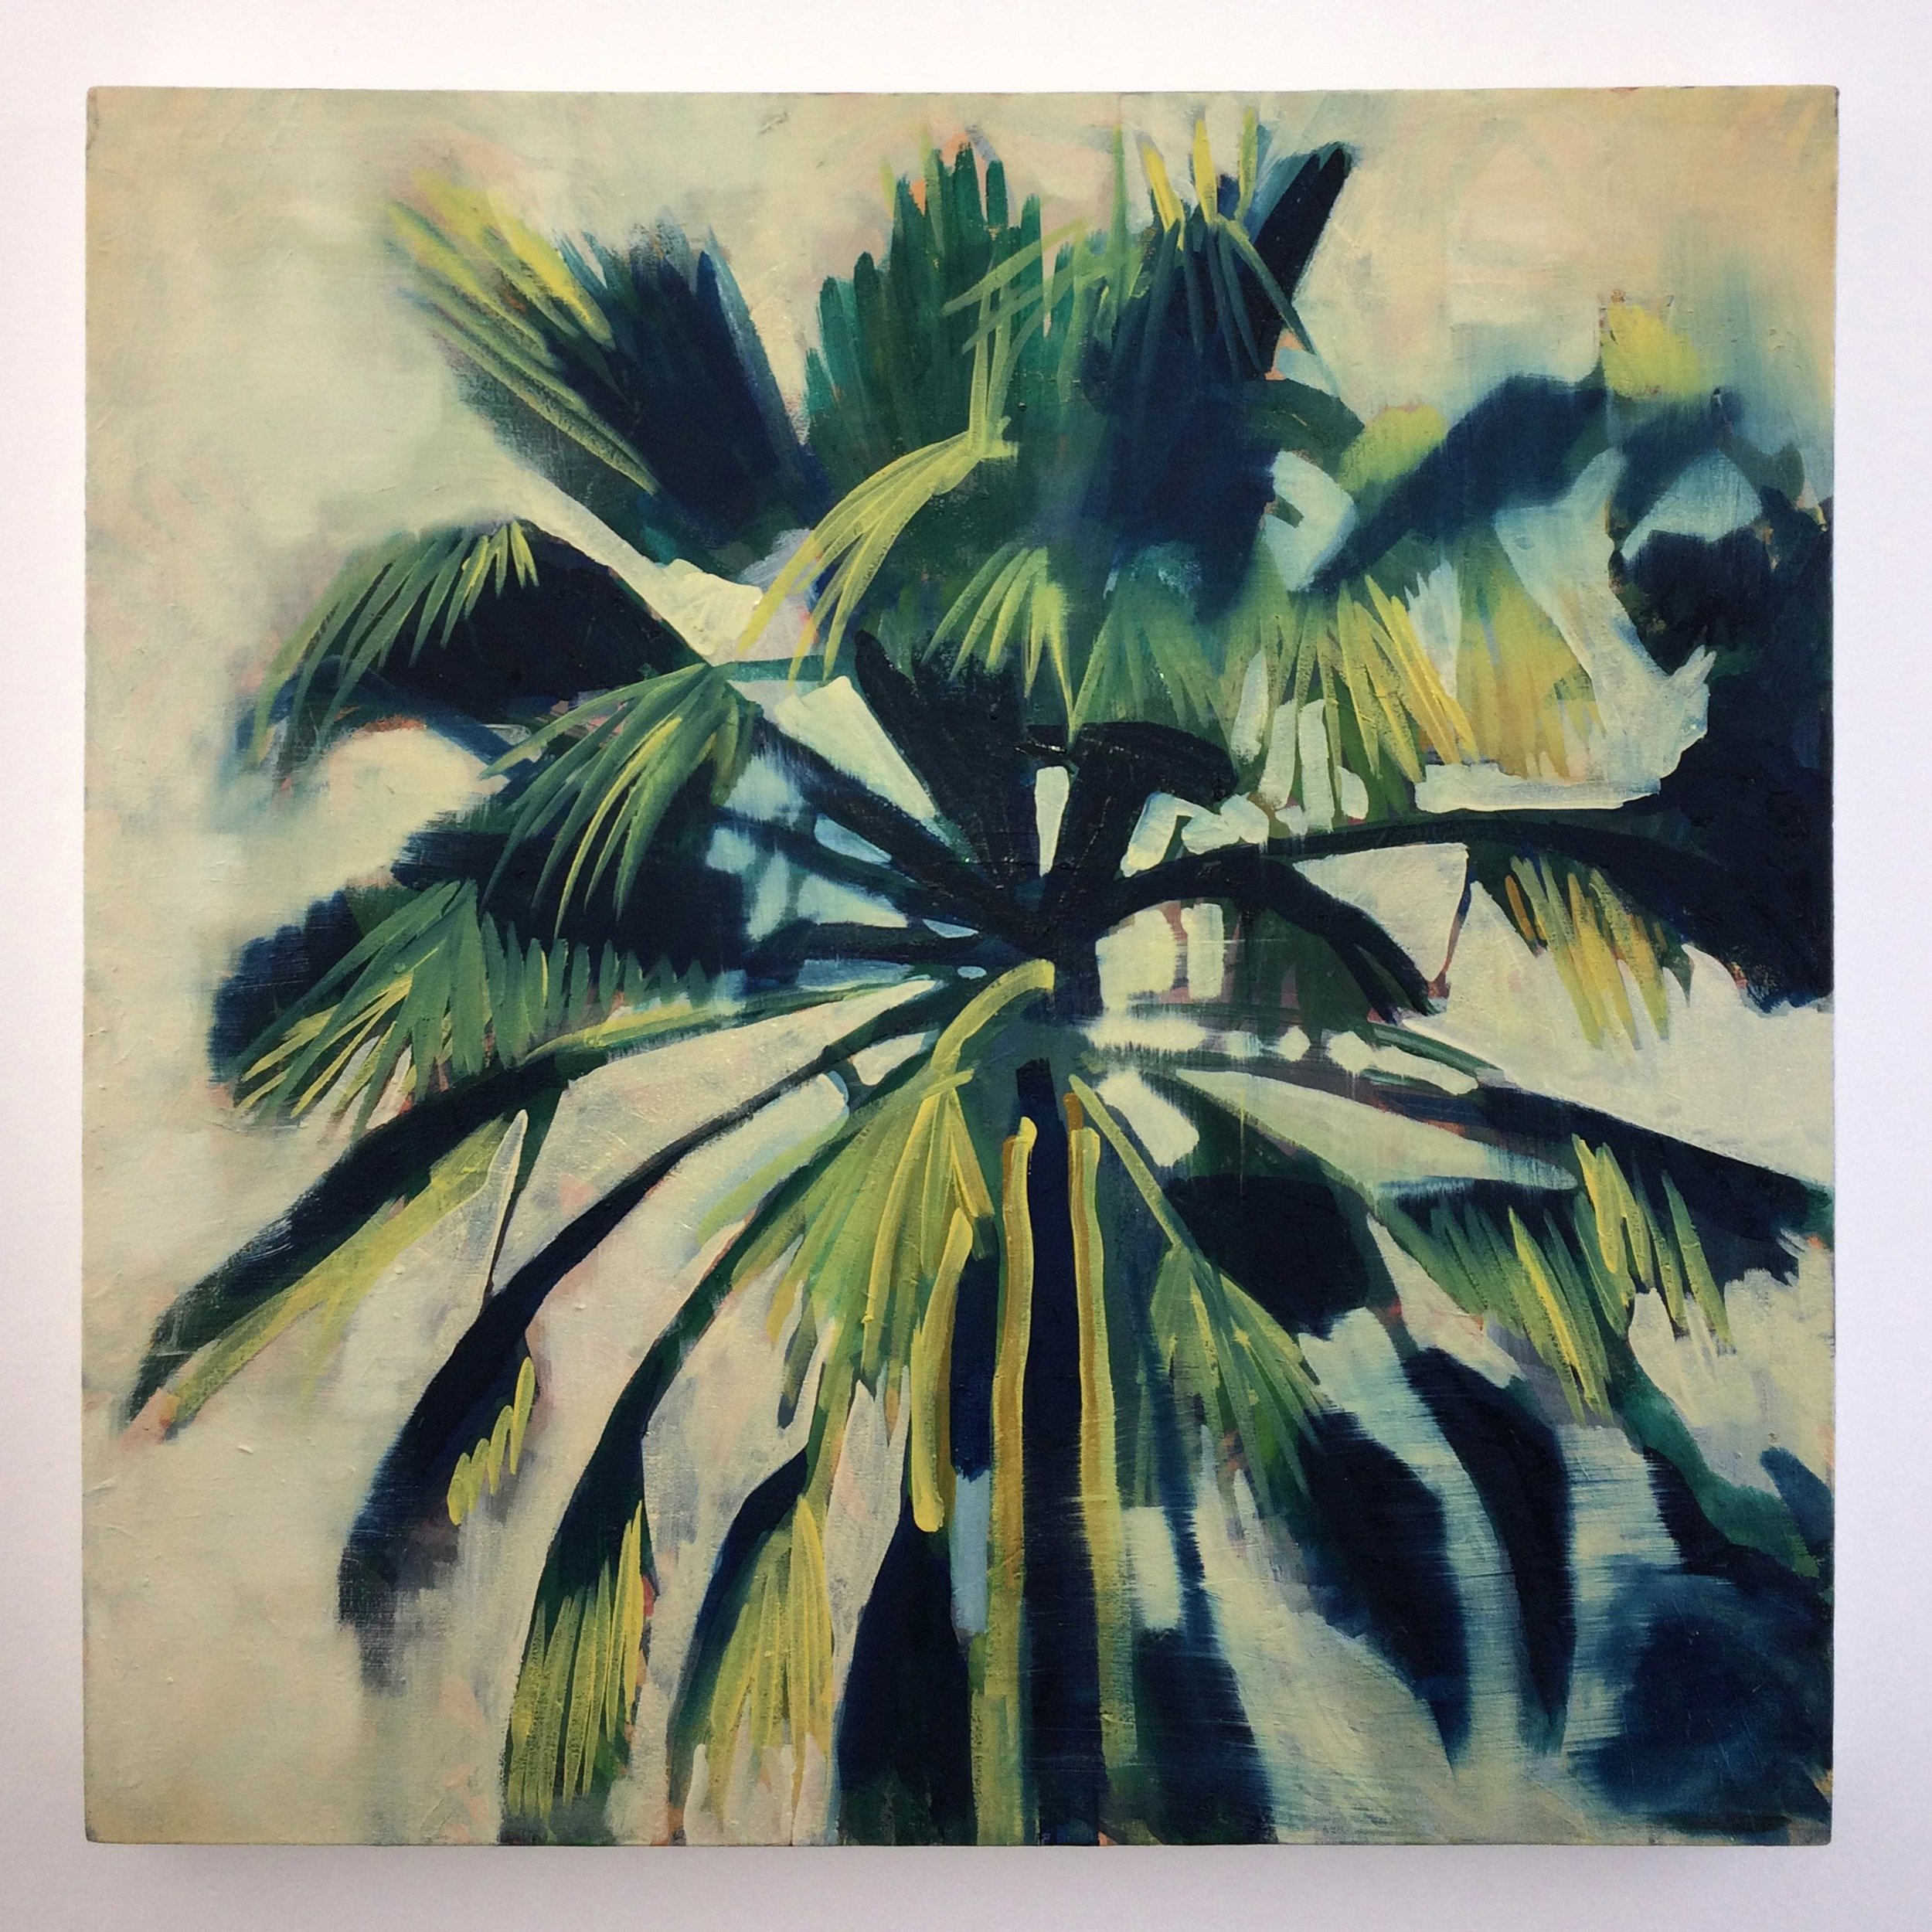 ' Beneath The Palms'   Leila Walter  Oil on canvas  740 x 790 x 40 mm  R 6 000.00